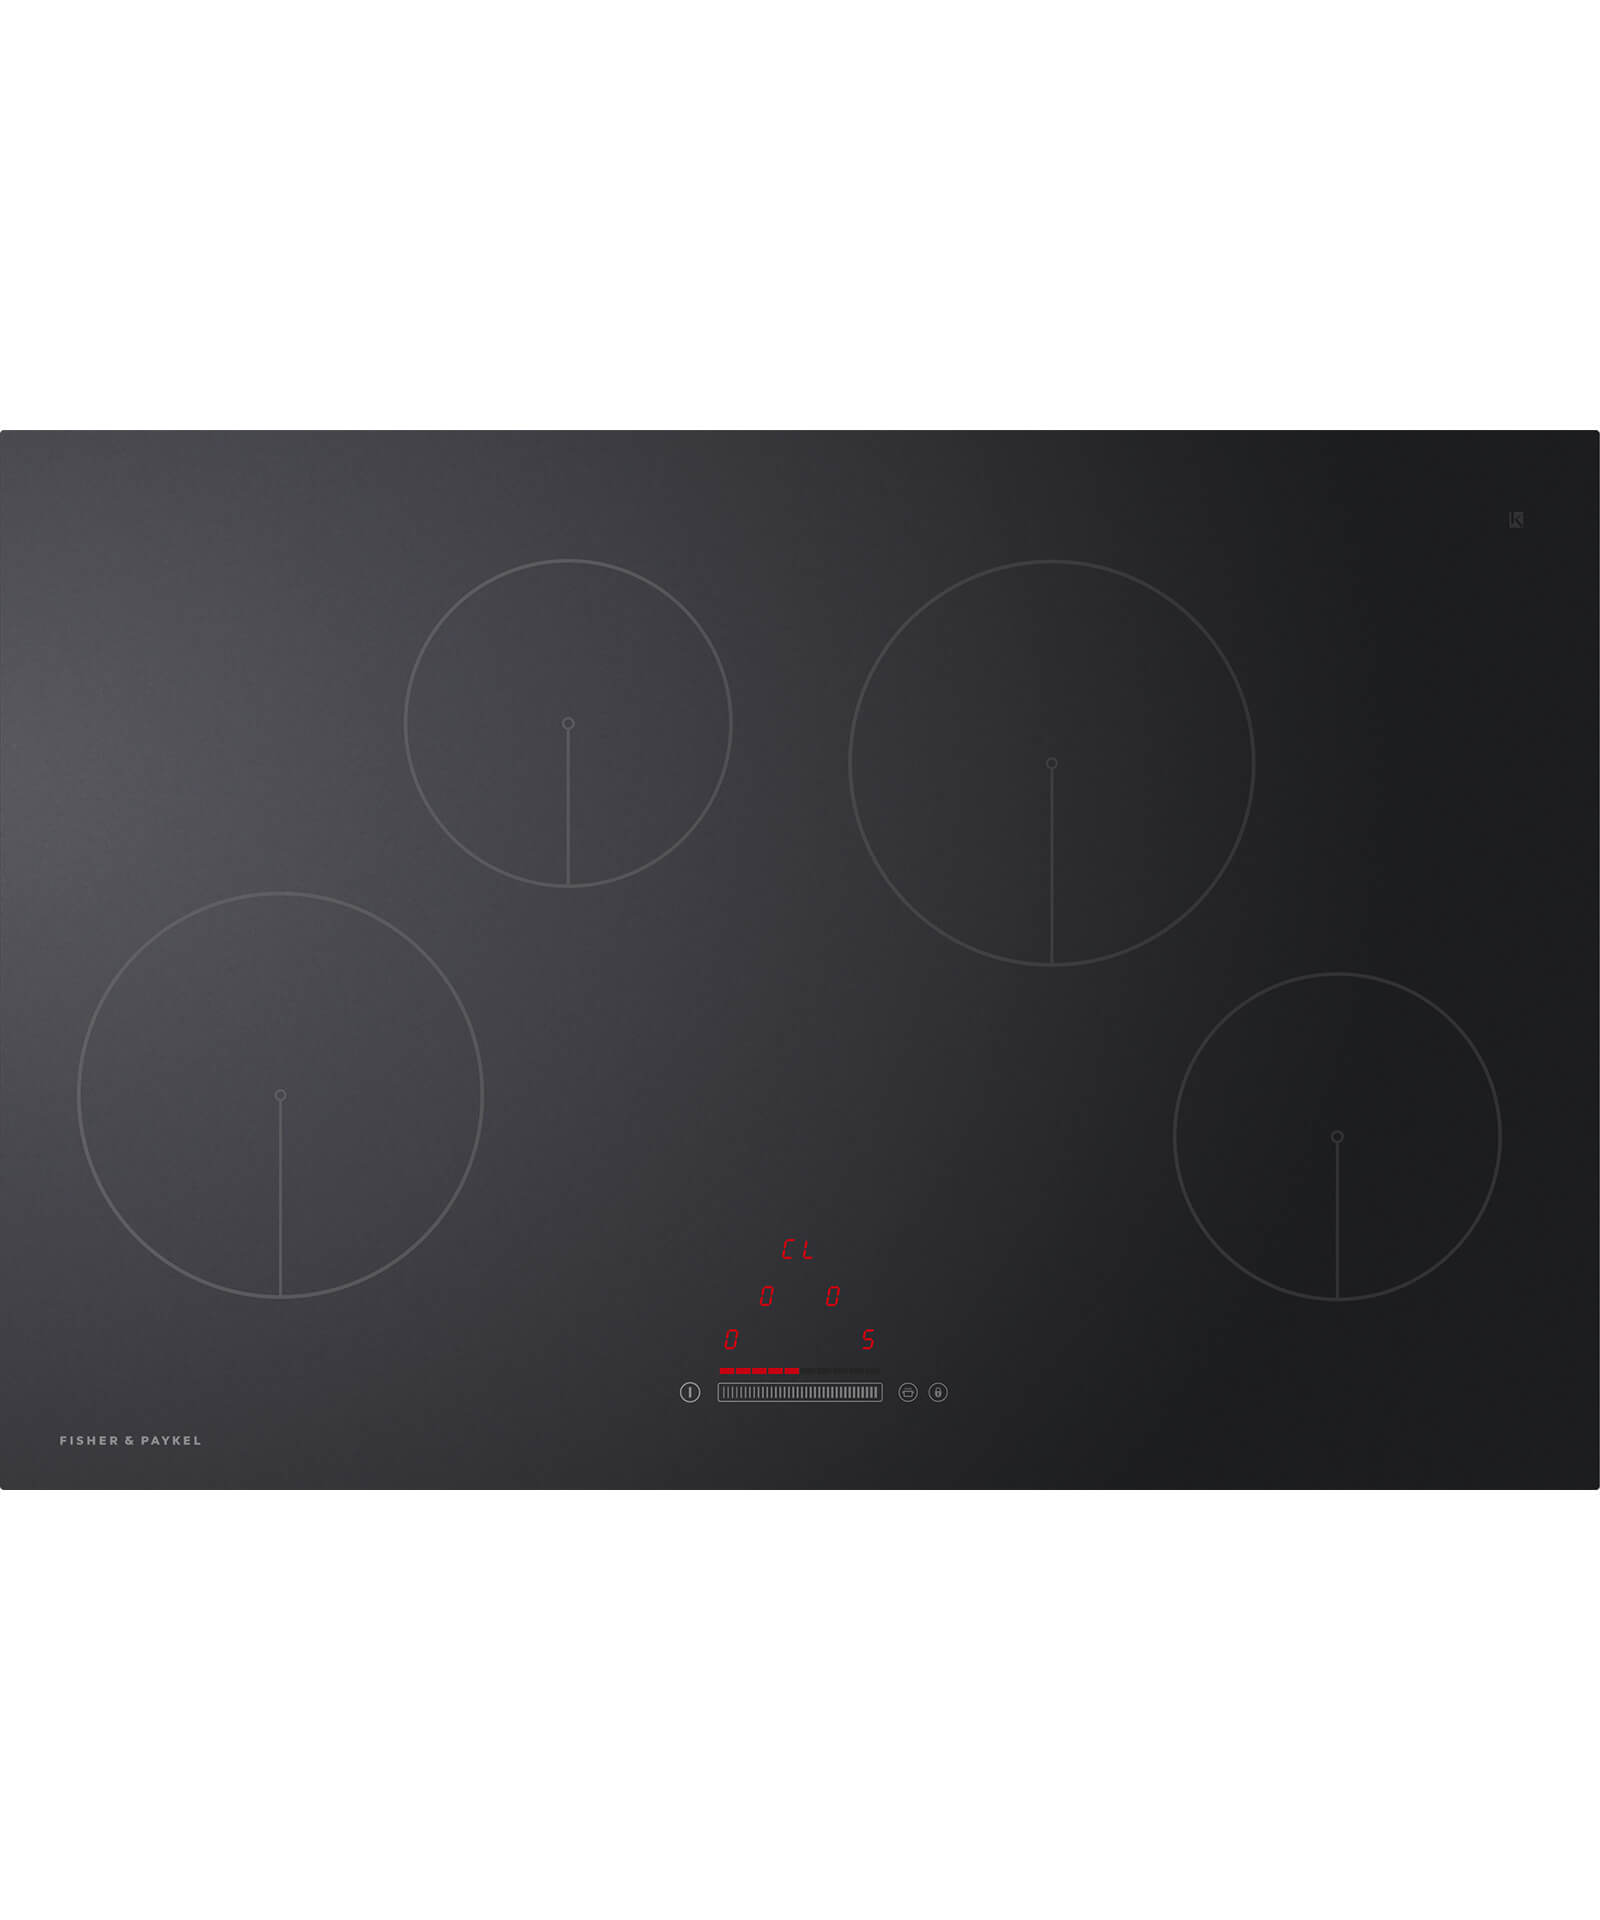 hight resolution of ci804ctb1 80cm 4 zone induction hob 81375